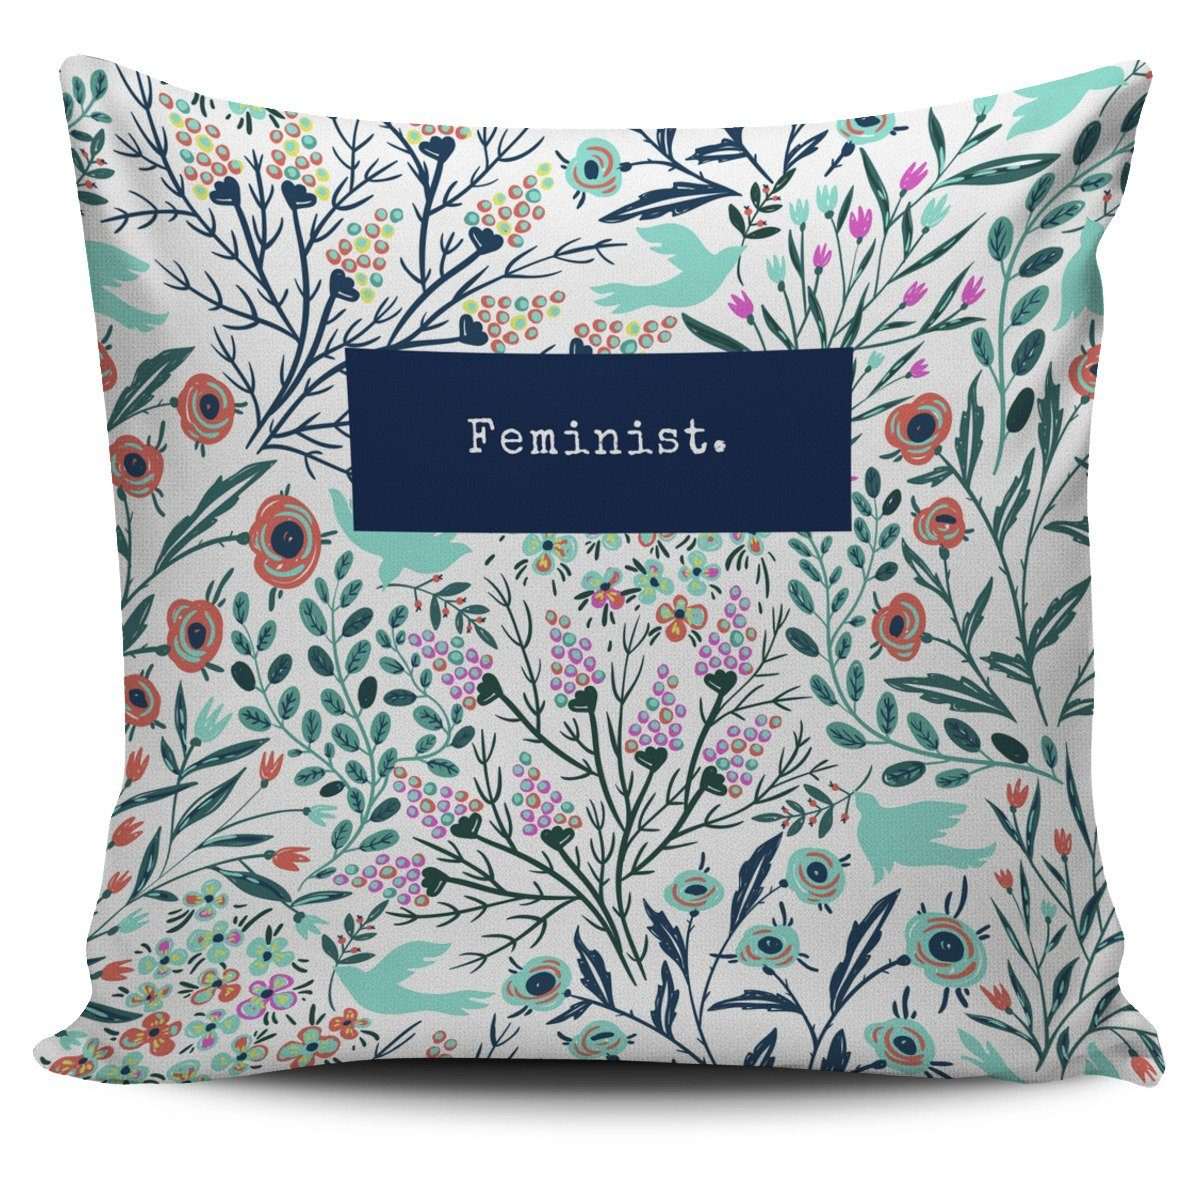 """Feminist."" Pillow Cover"